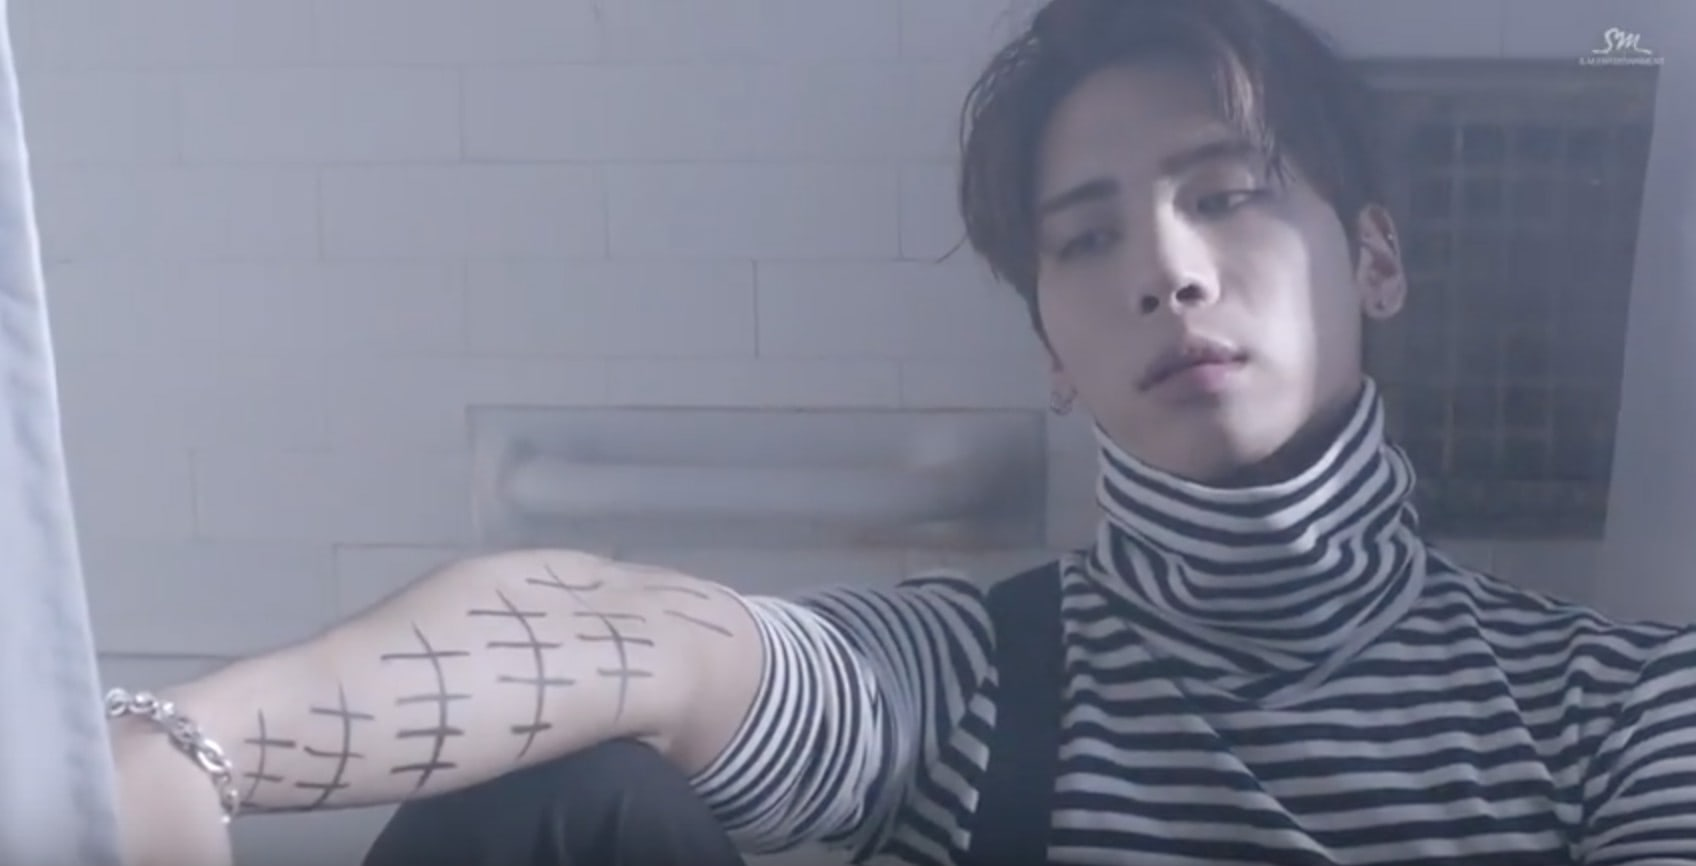 WATCH: SHINees Jonghyun Just Wants Some Love In New Song Featuring Taeyeon, Lonely